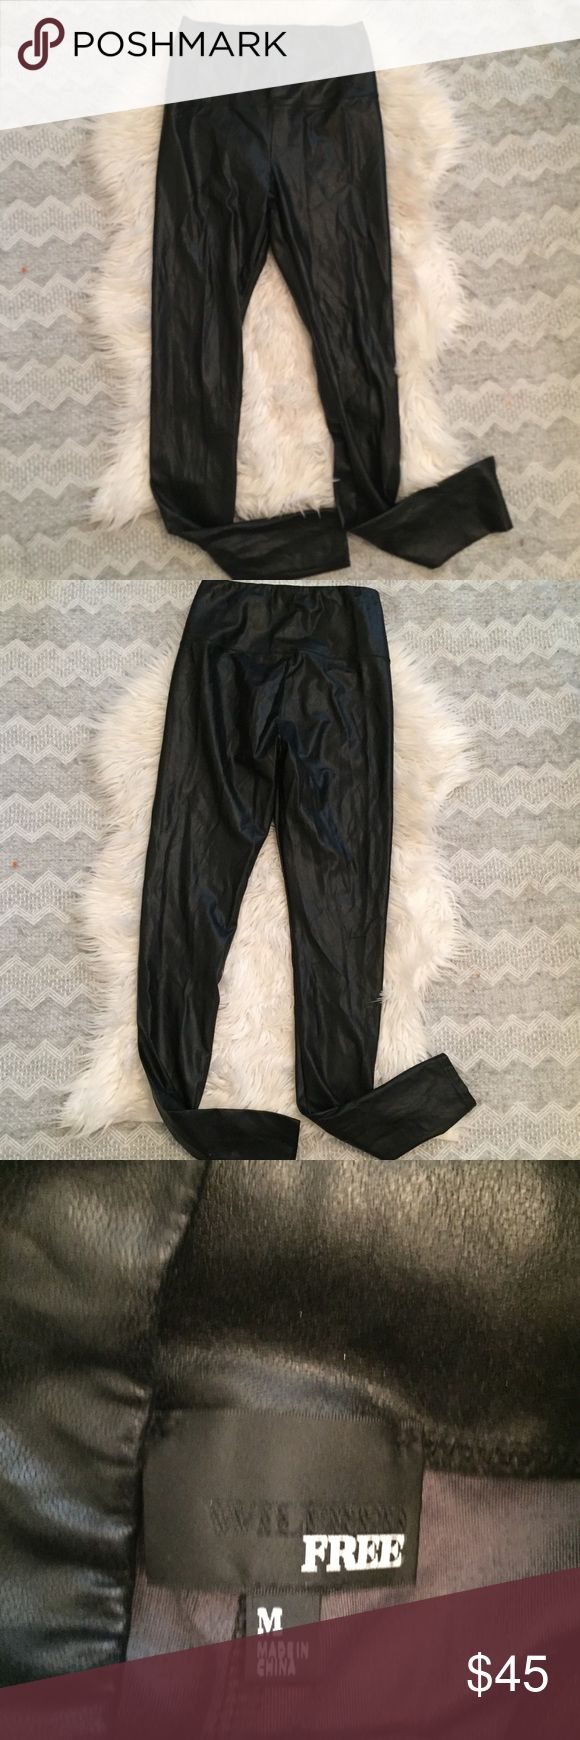 Wilfred Free High Vegan Leather Legging Daria Pant Wilfred Free High Waisted Leather Daria Legging Jean . Super soft inside and out!! Size medium, great quality & great condition! Vegan leather. Wilfred Pants Leggings